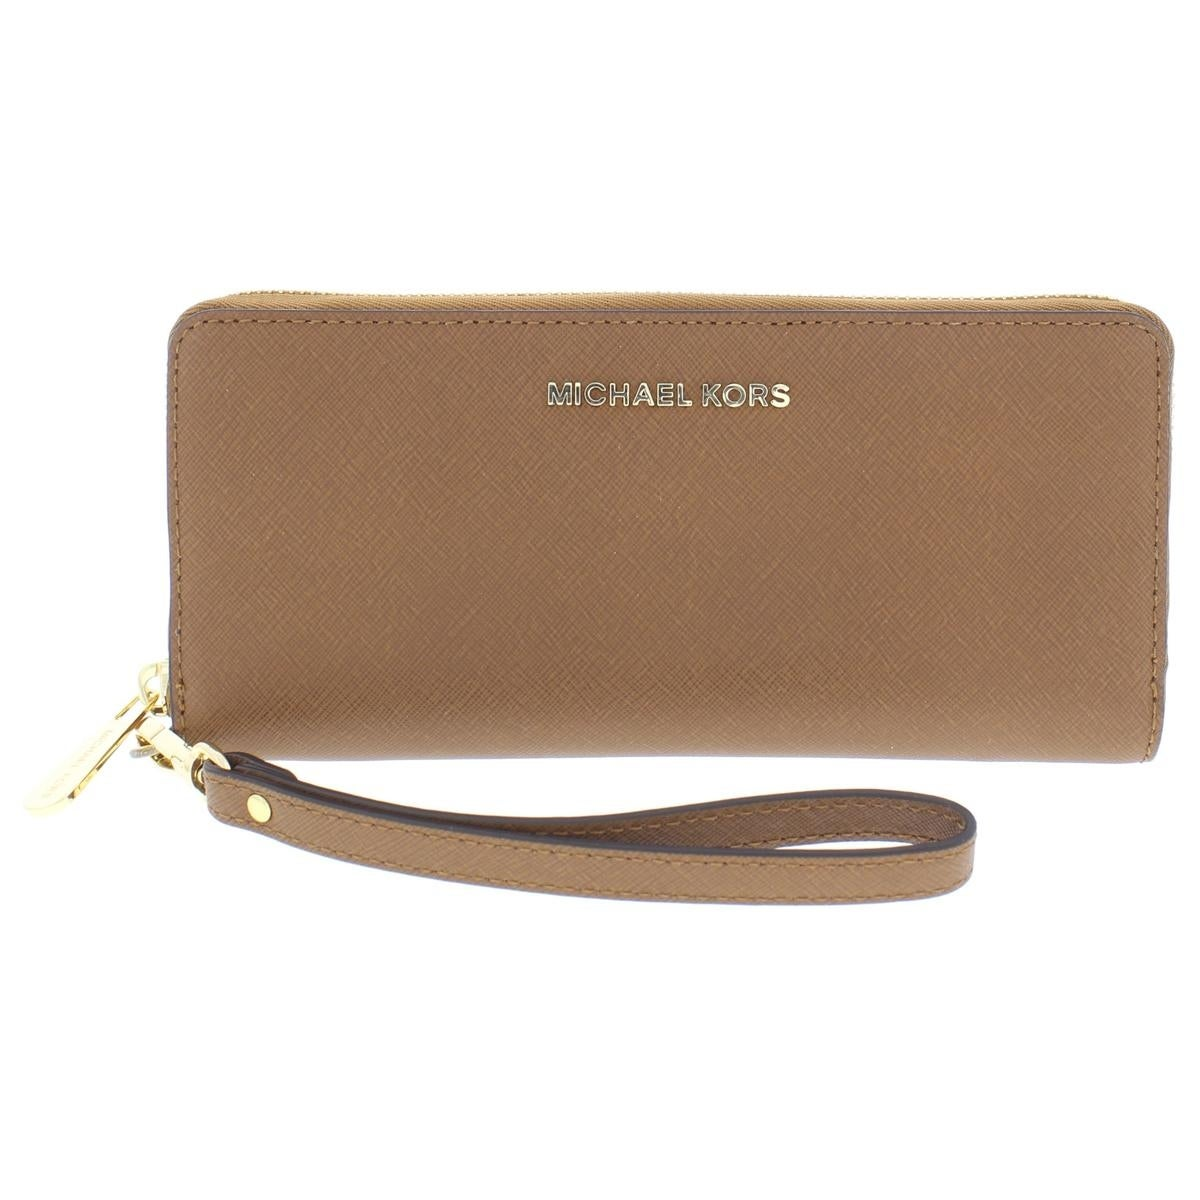 2139161a373a Shop Michael Kors Womens Jet Set Travel Continental Wristlet Wallet Leather  Clutch - Free Shipping Today - Overstock - 25596092